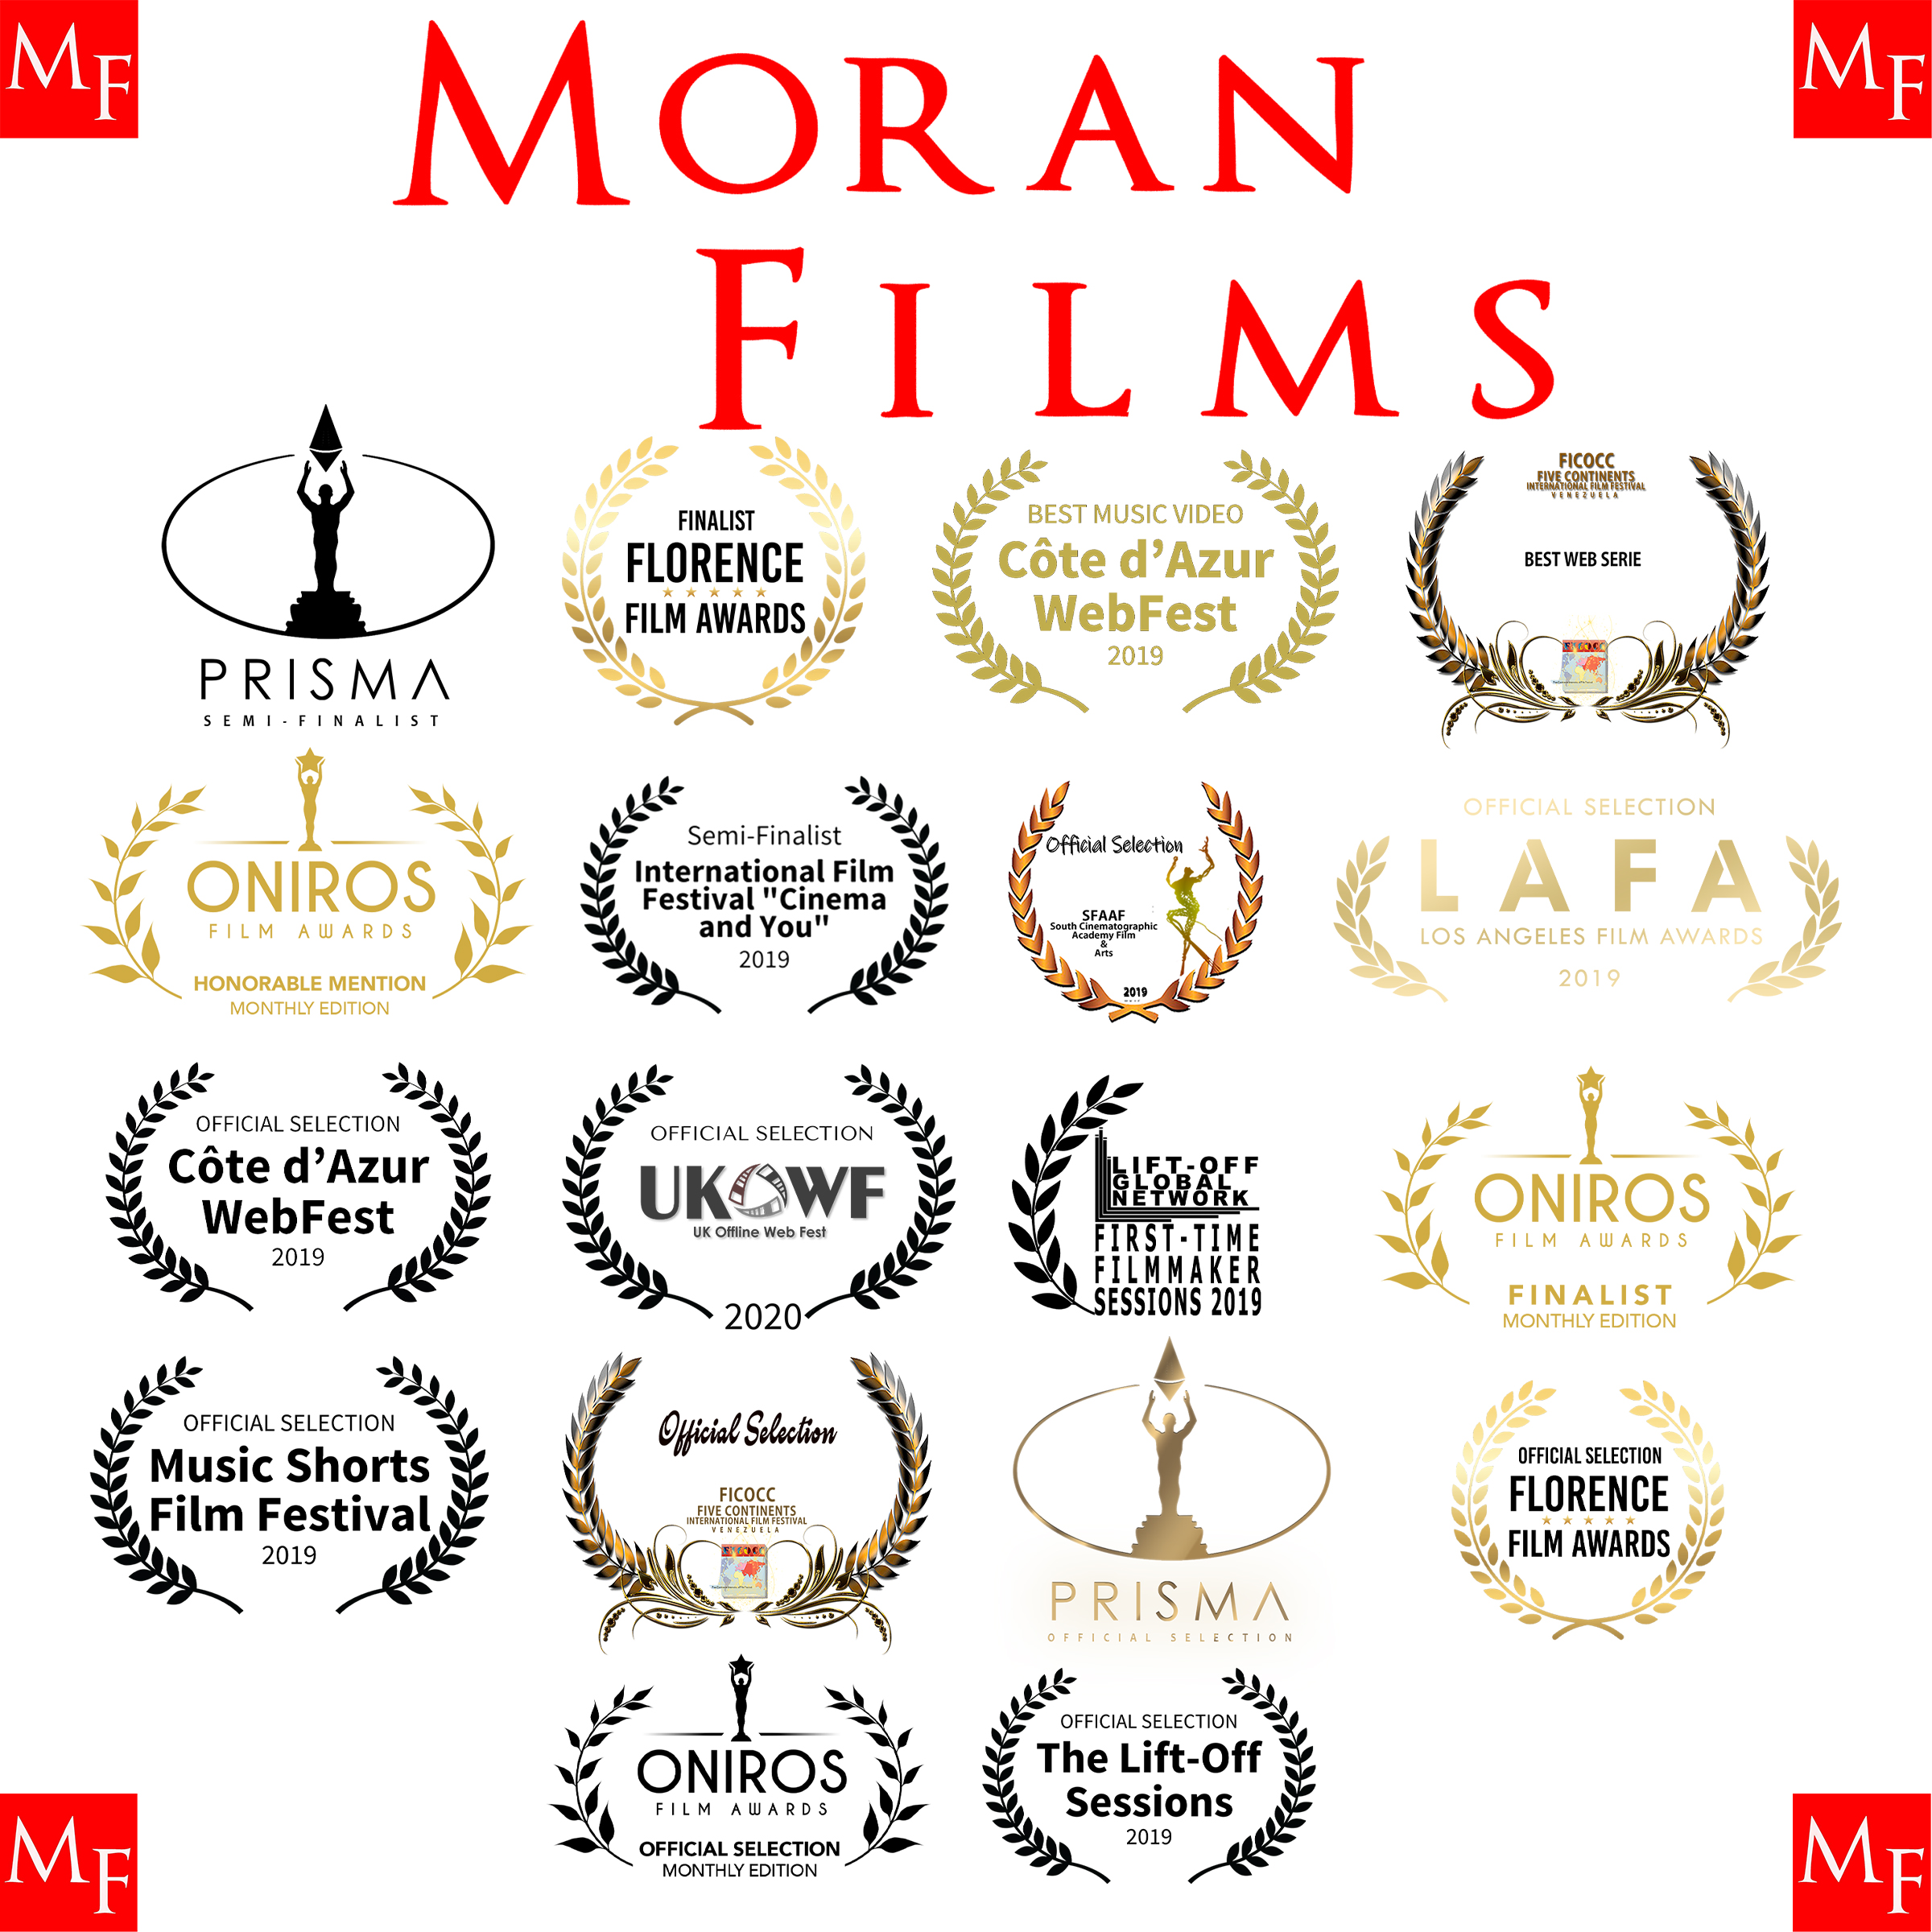 www.moranfilms.co.uk